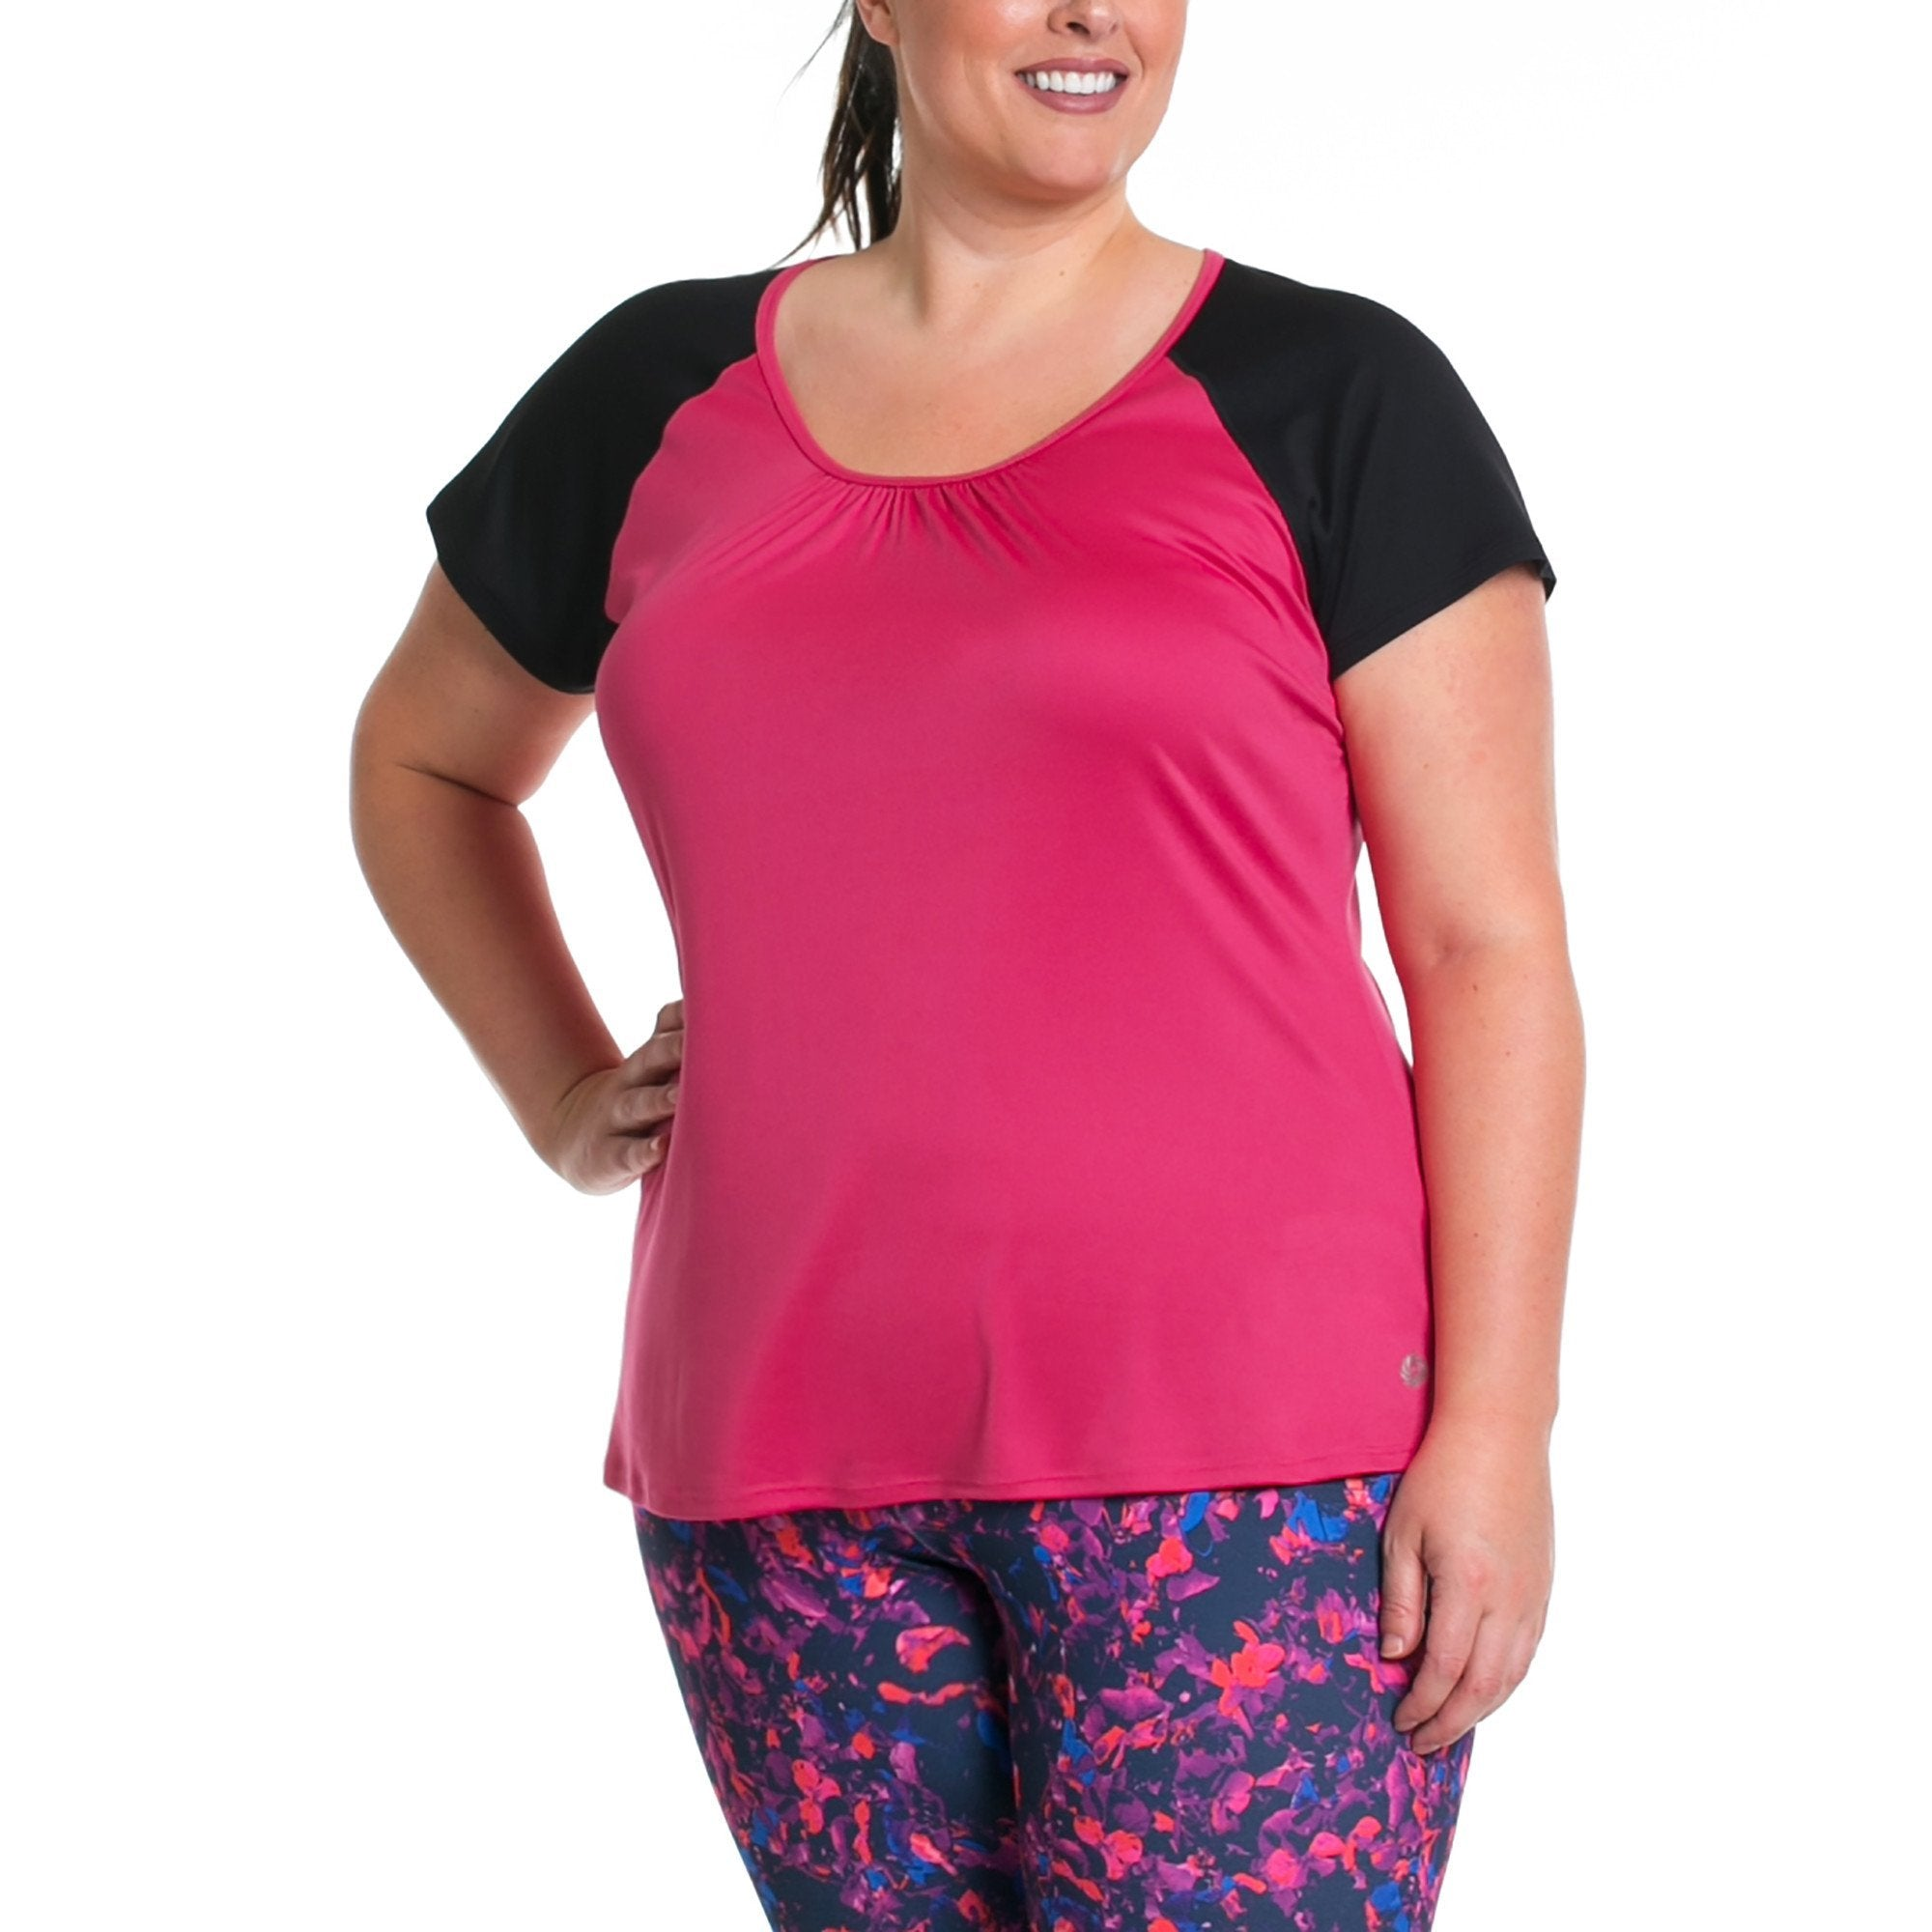 Charlotte Tee - Rainbeau Curves, 14/16 / Cobalt, activewear, athleisure, fitness, workout, gym, performance, womens, ladies, plus size, curvy, full figured, spandex, cotton, polyester - 1